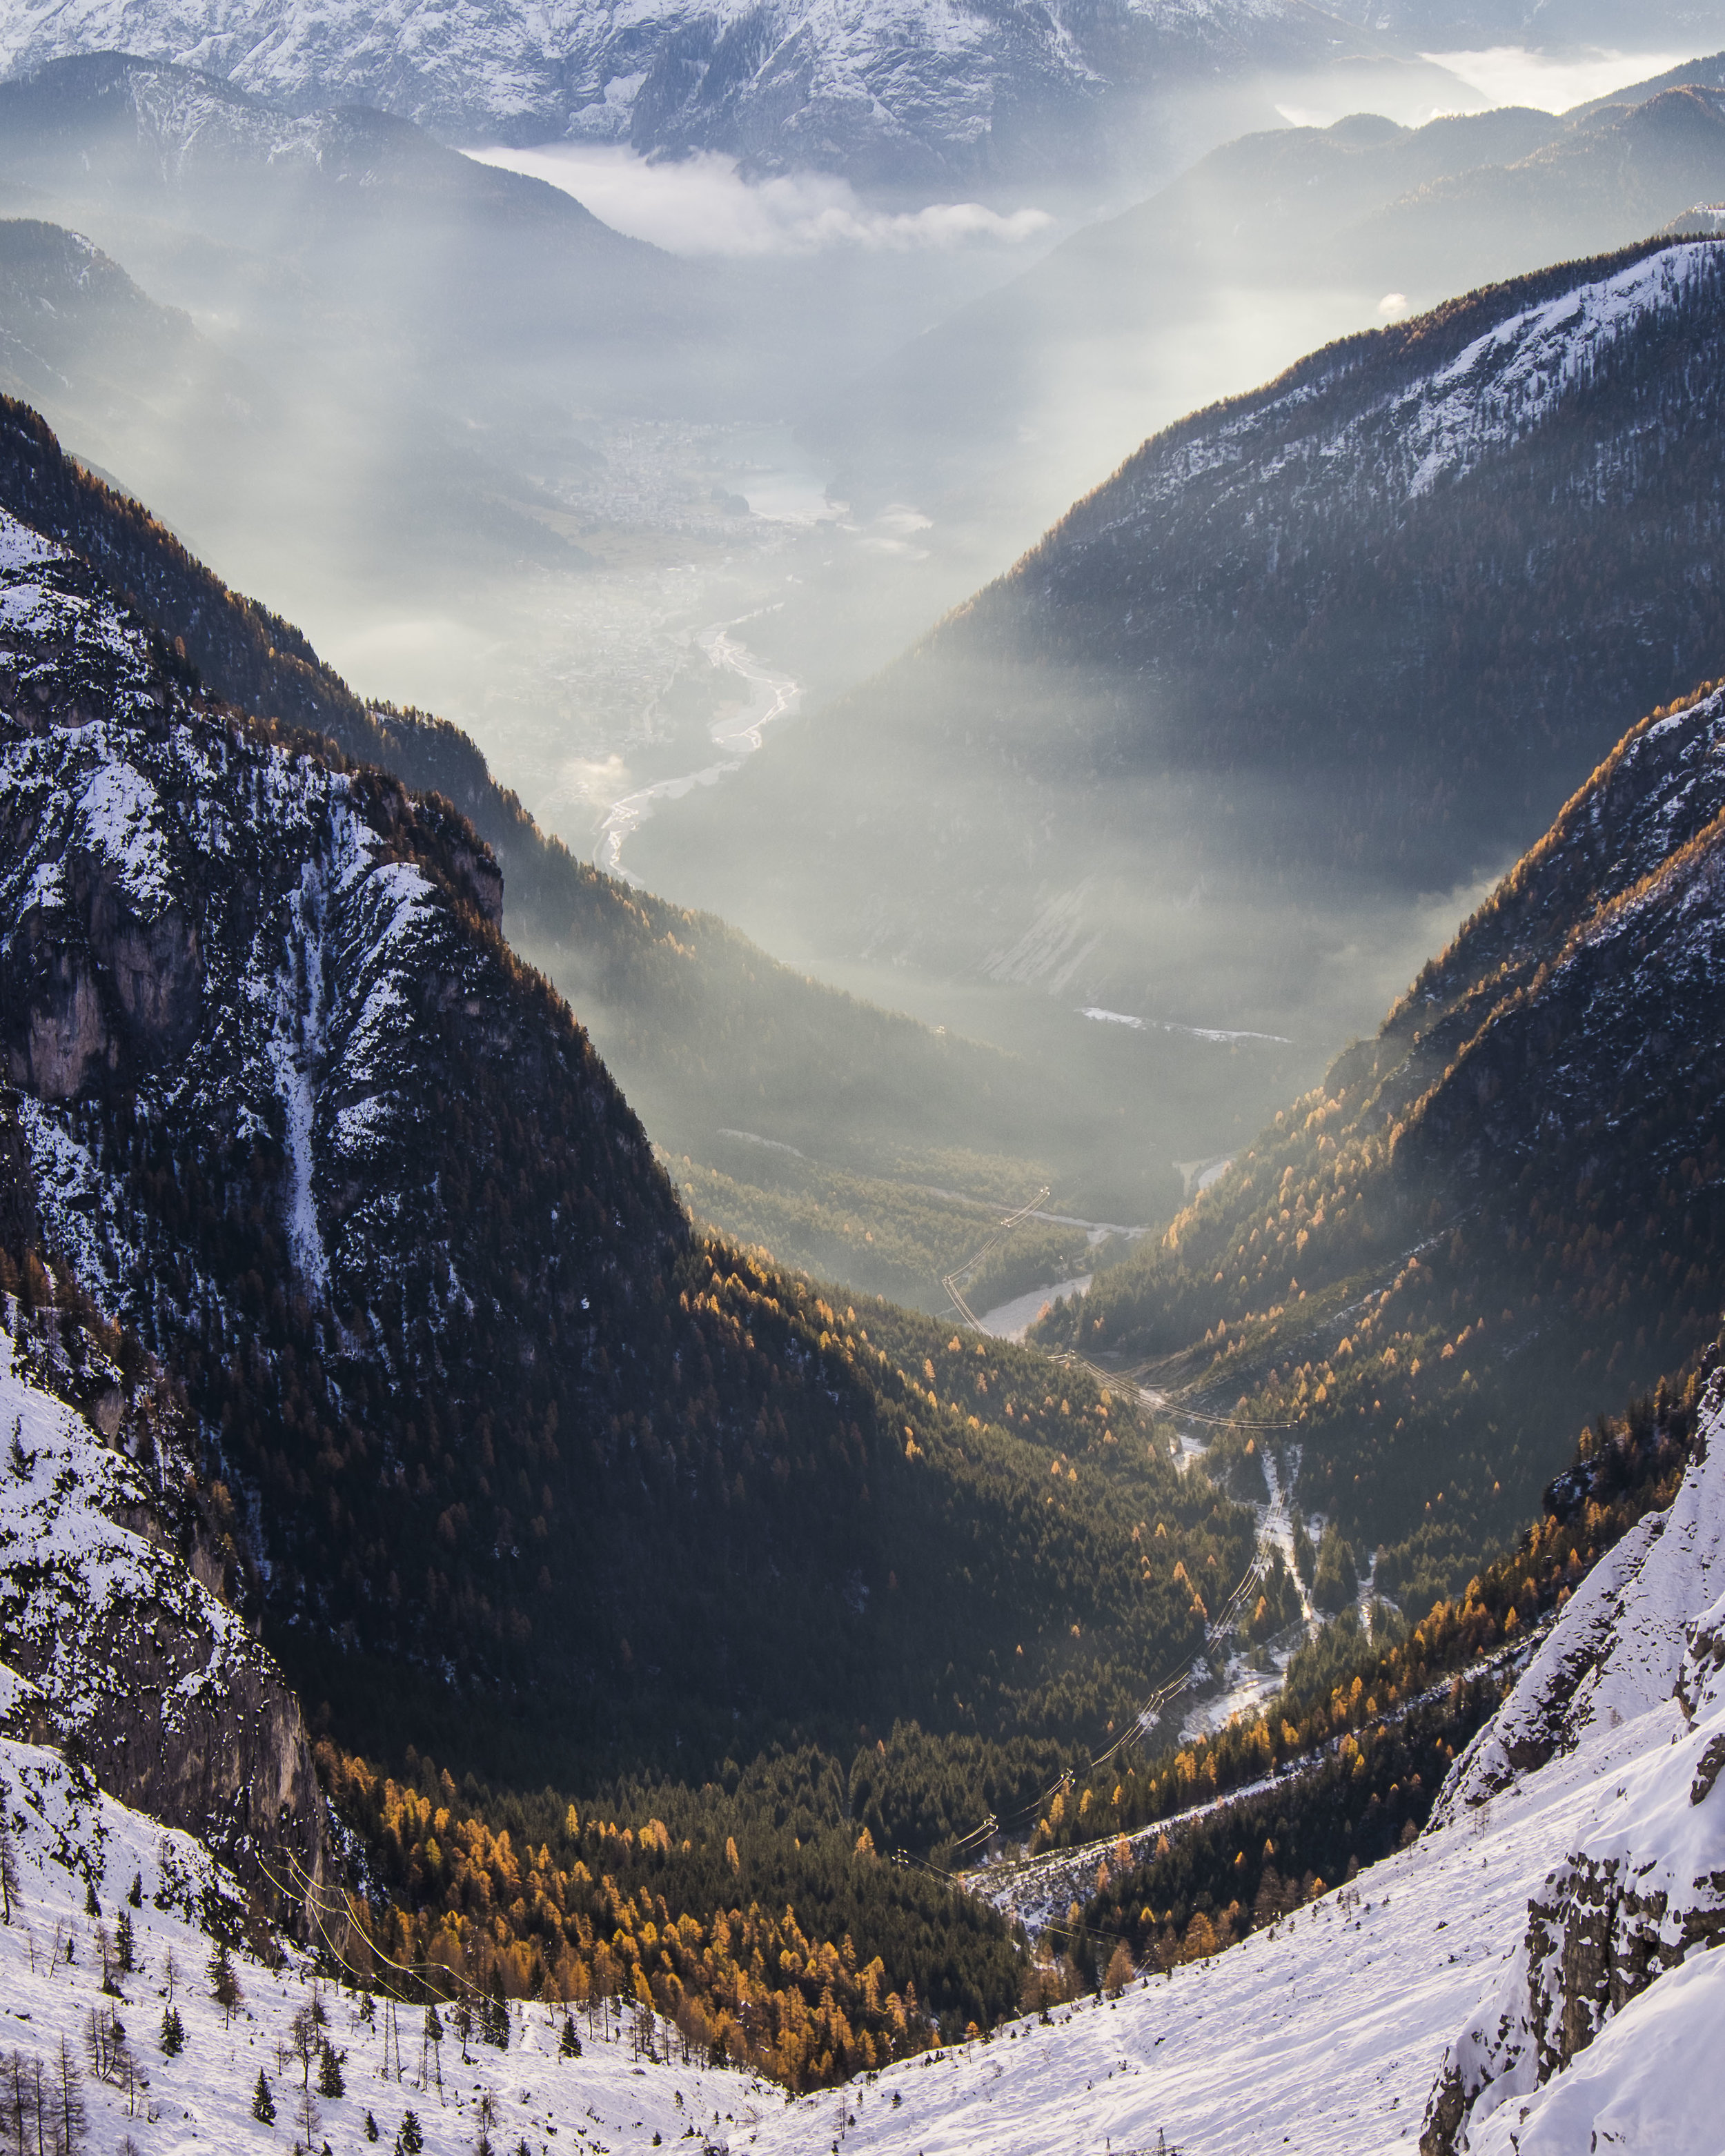 2000m  After hiking up in total darkness and deep snow I got rewarded by these stunning sunrays in the valley below after sunset. 55mm, f9, 1/90s, Fuji X-T1